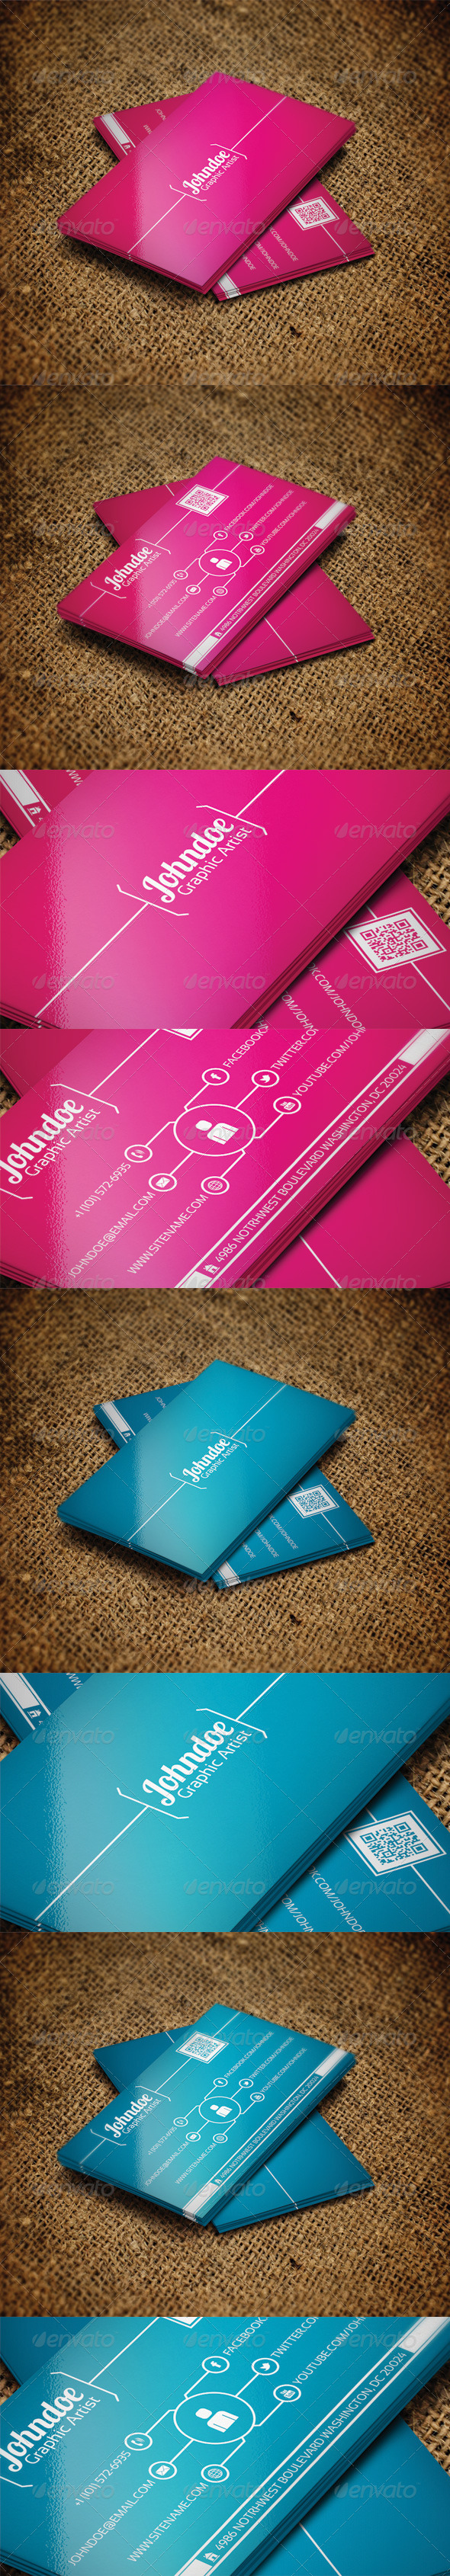 Colourful Business Card Set V2 - Creative Business Cards